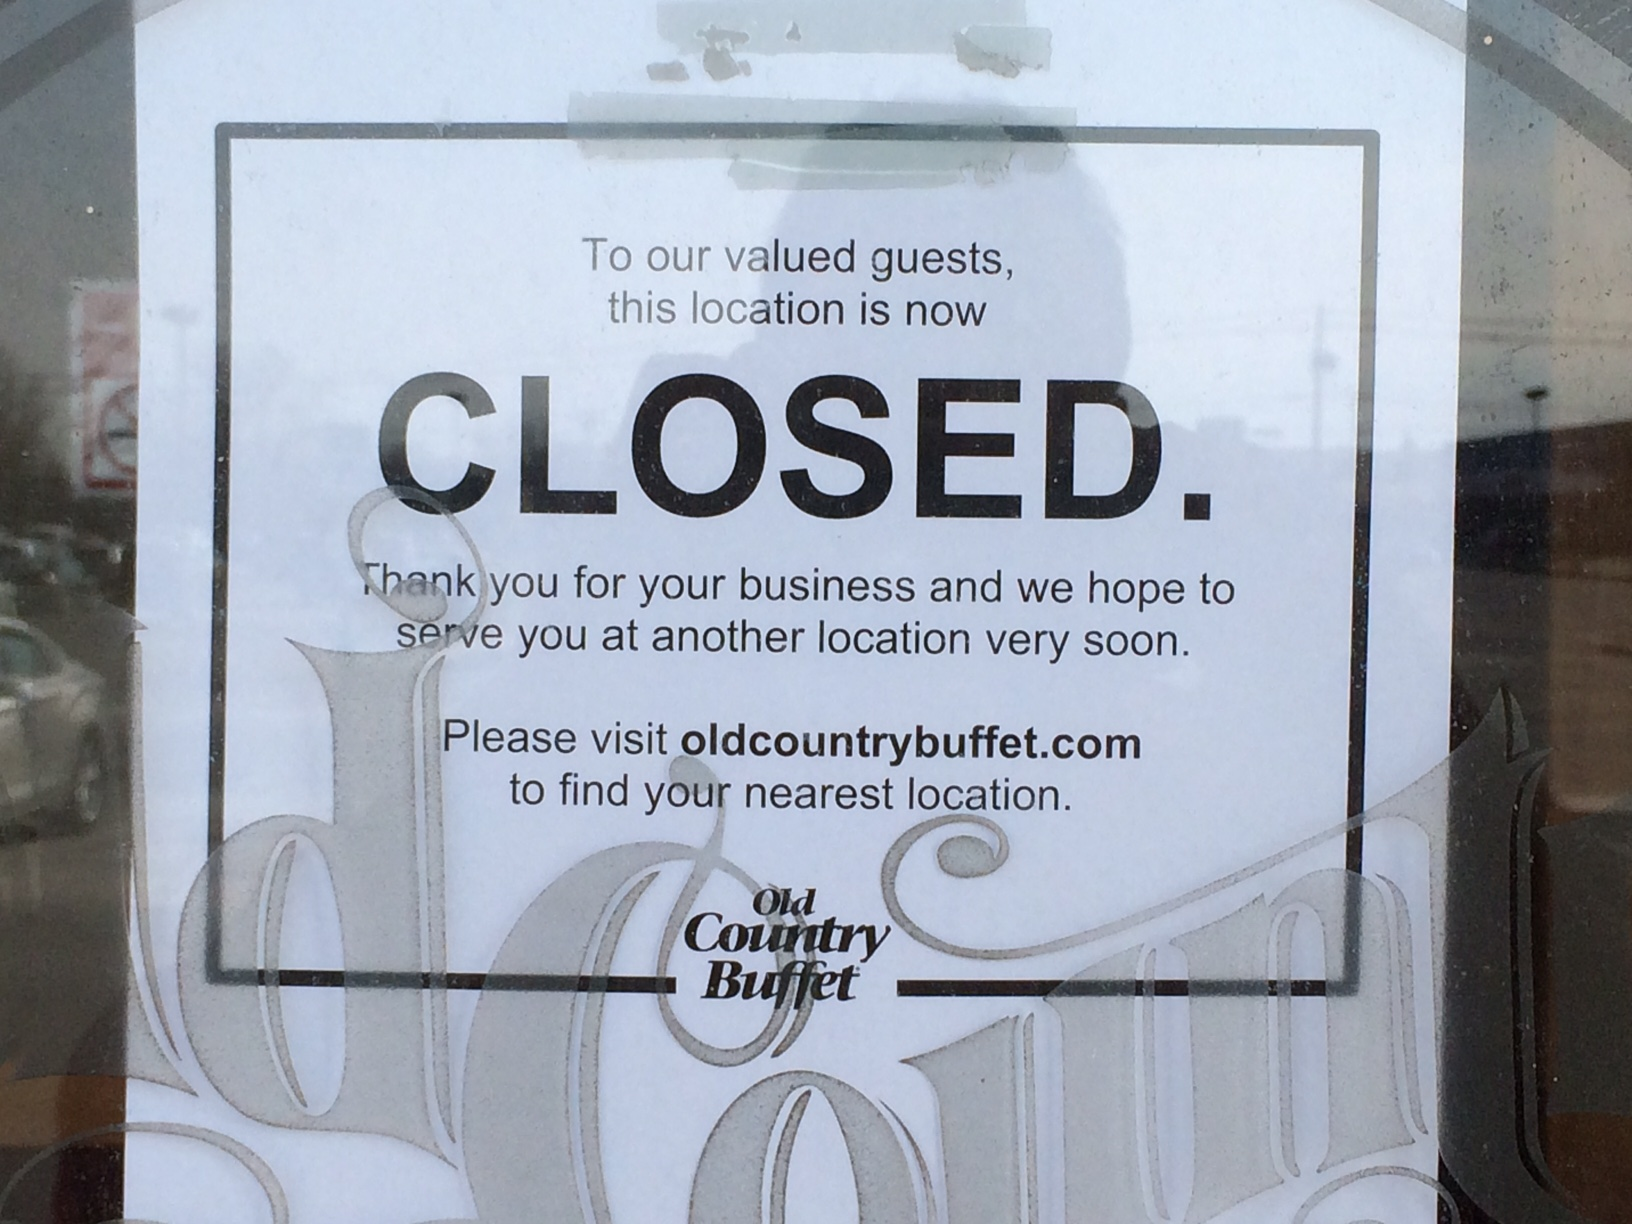 old country buffet closed assets auctioned